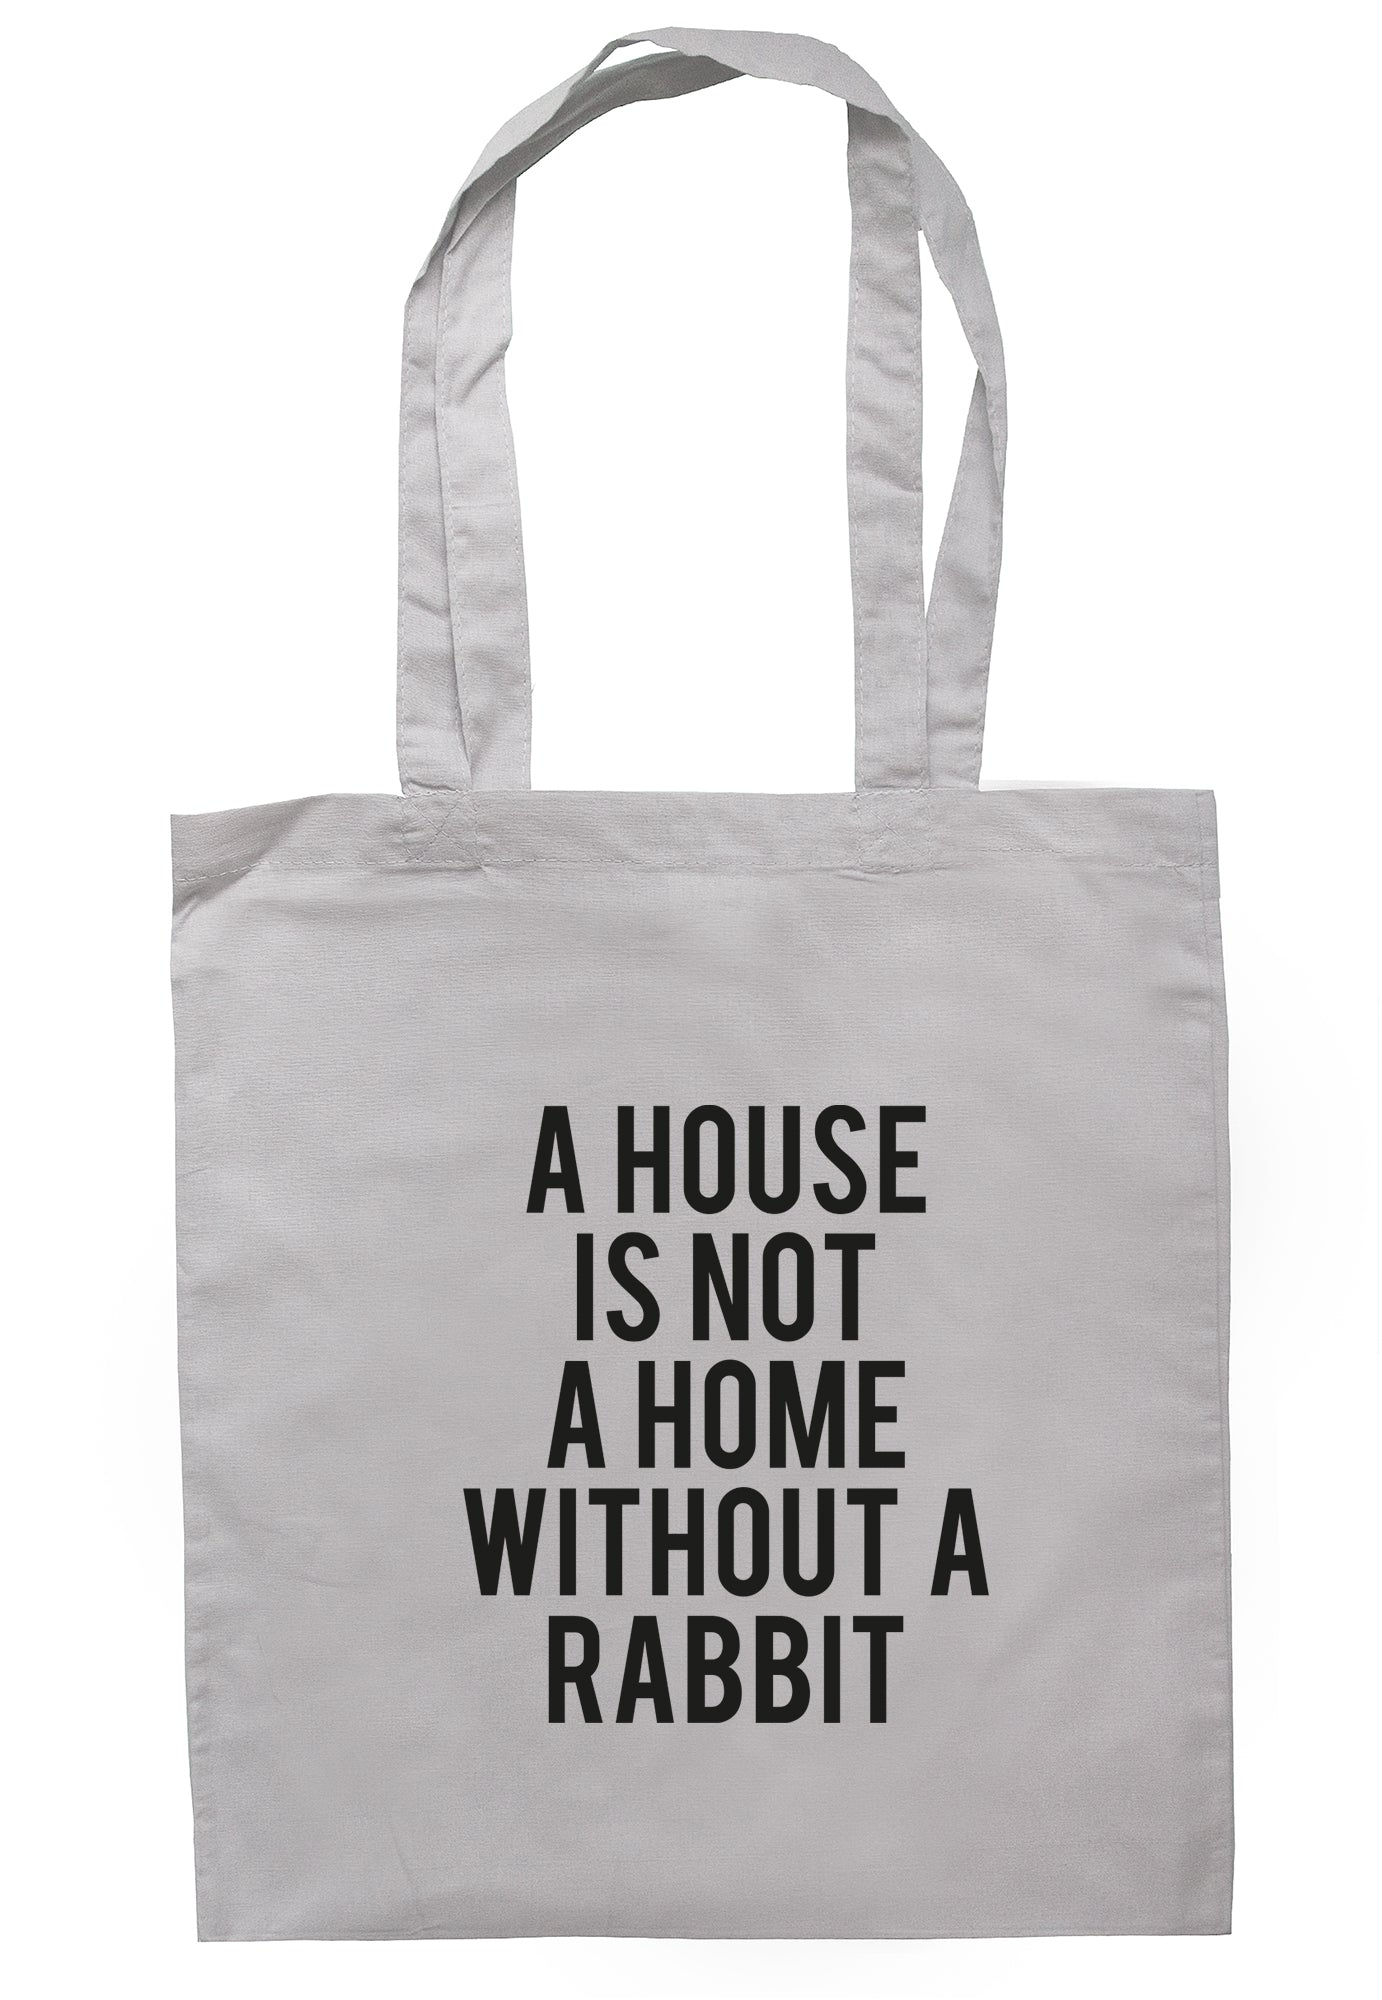 A House Is Not A Home Without A Rabbit Tote Bag TB1655 - Illustrated Identity Ltd.